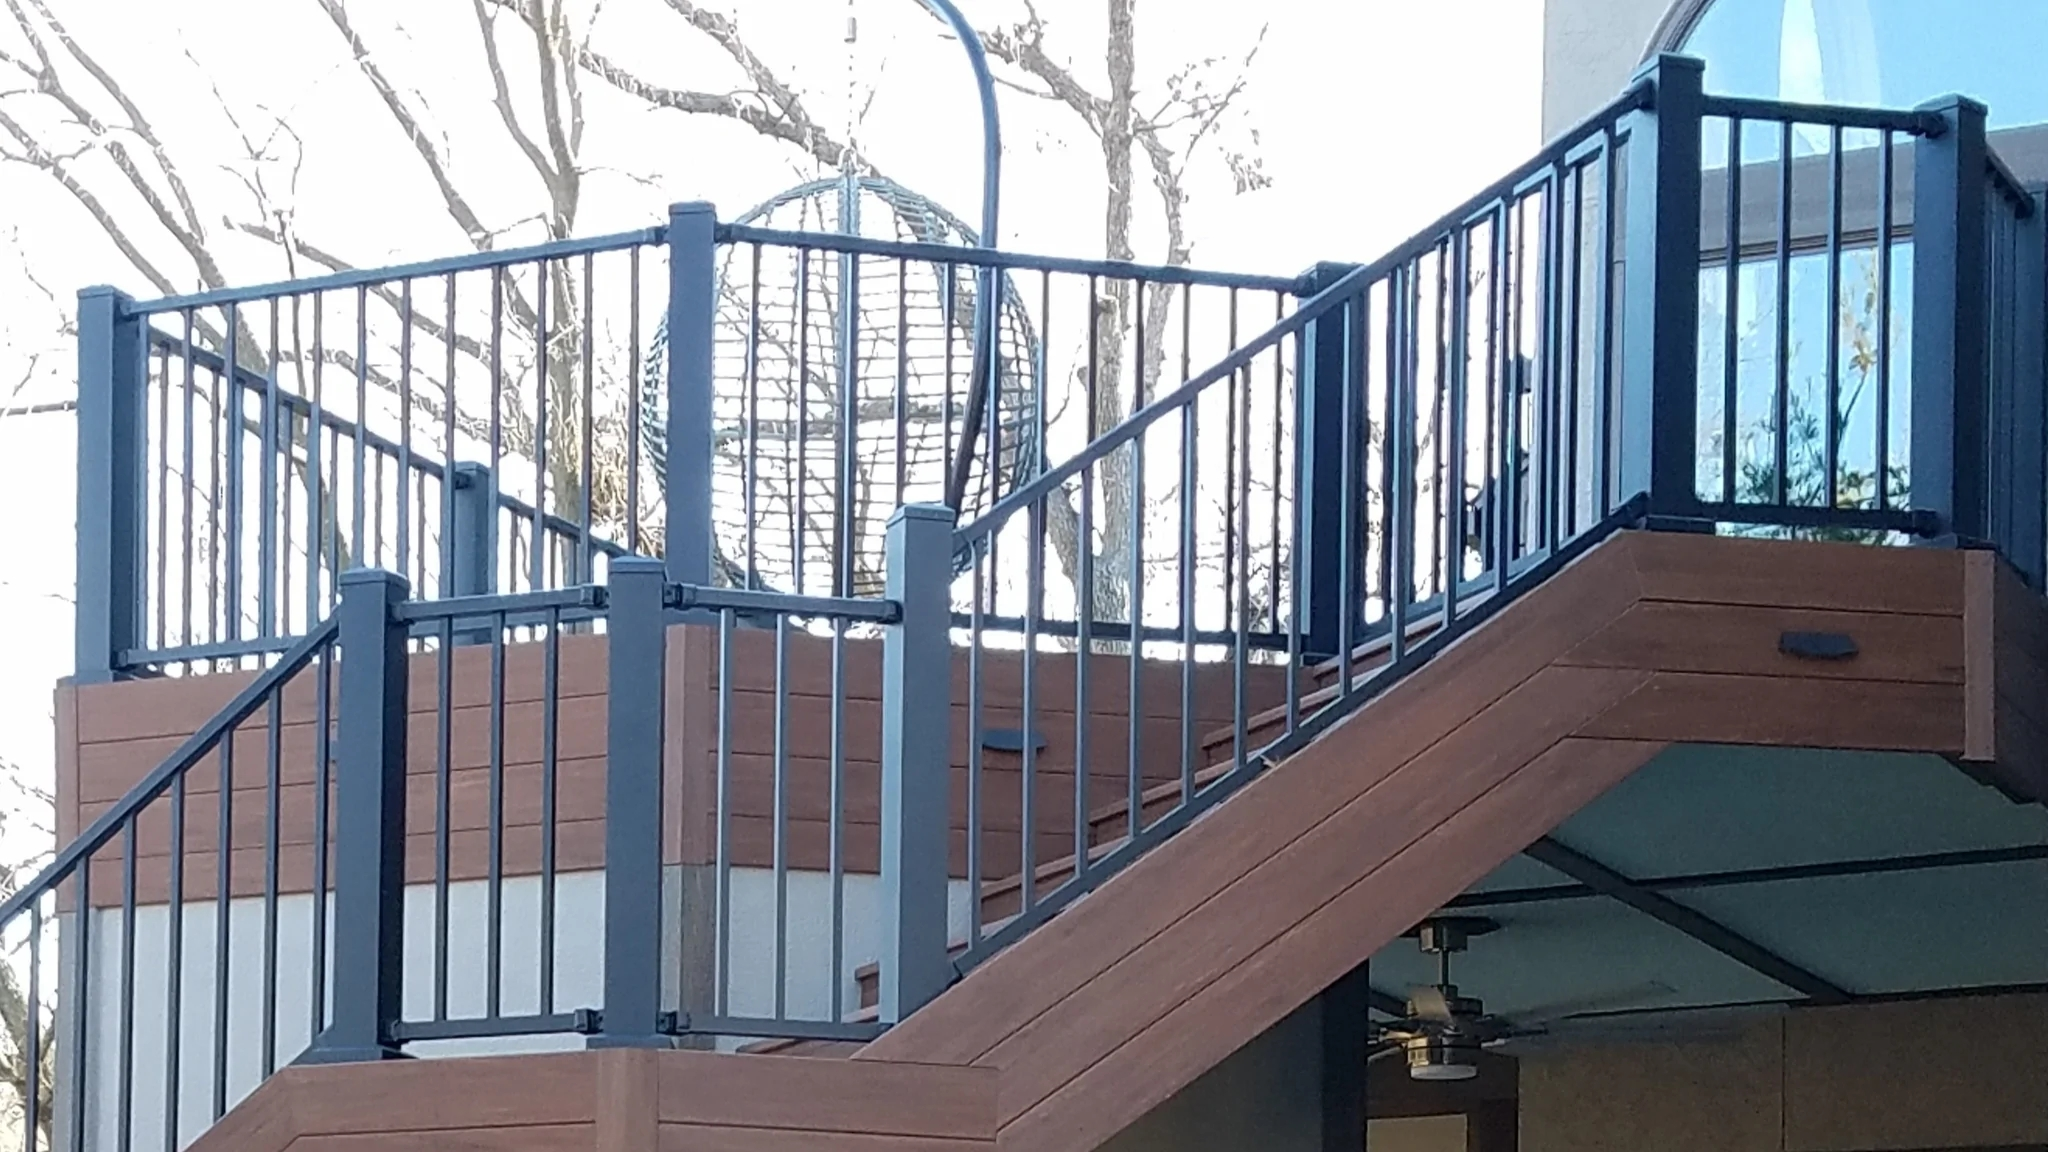 Deck Railing Cost Comparison Railing Product Types Railing   Stair Railing Cost Per Linear Foot   Glass Railing   Baluster   Cable Railing Systems   Stair Case   Wrought Iron Railings